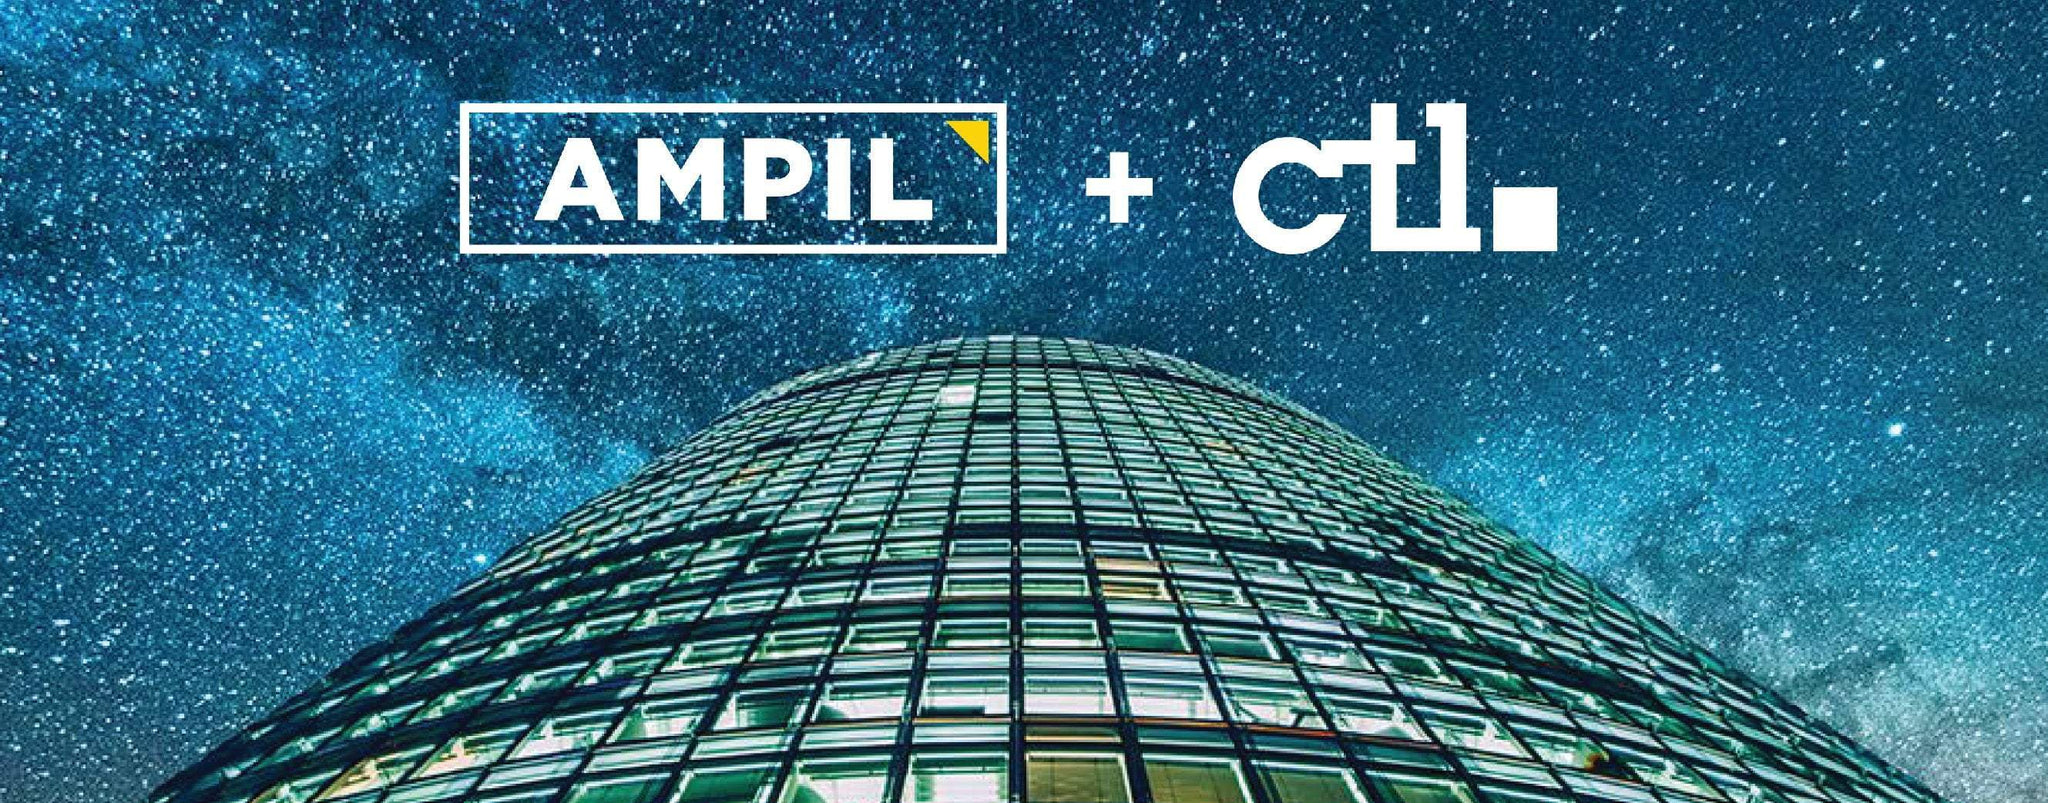 CTL Partners with AMPIL to Provide Flexible Financing Options for Our Customers